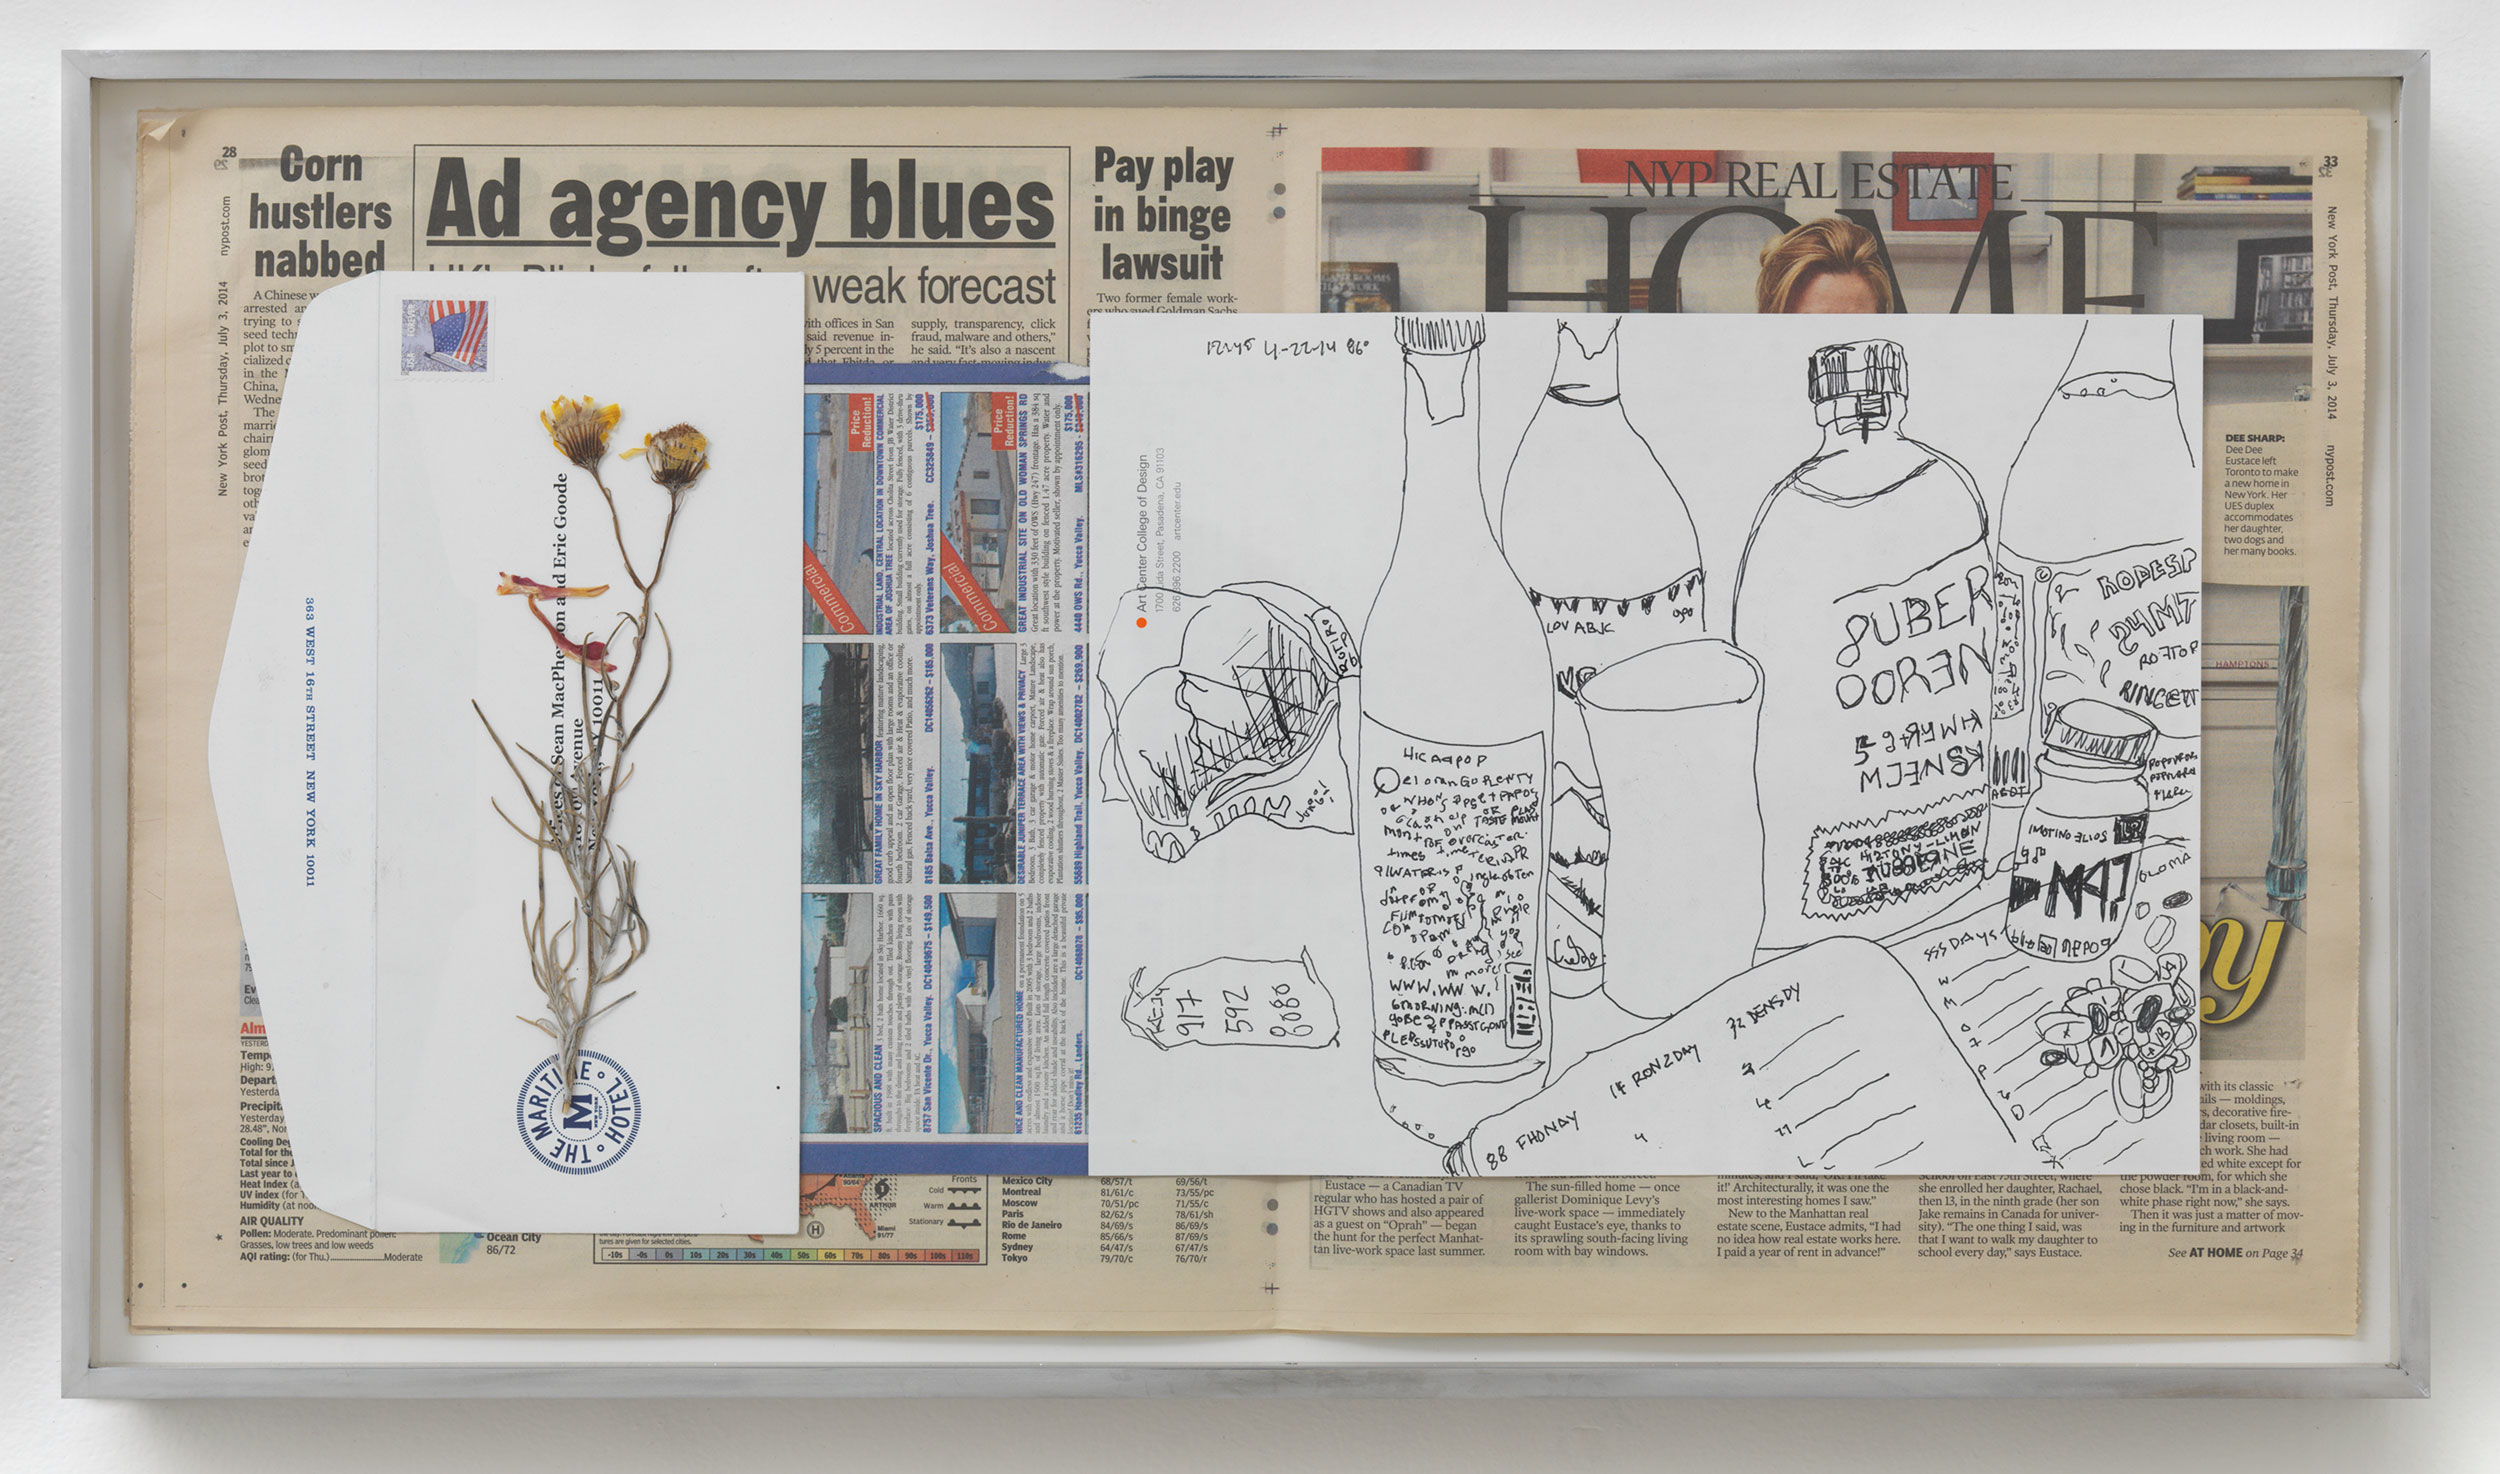 Corn Hustlers Nabbed; Ad Agency Blues: Pay Play in binge lawsuit, 86º, 2:45pm, 22-4-14    2014   Ink on paper, envelope, dried flower, newspaper  12 x 22 inches   Gastarbeiten, 2014